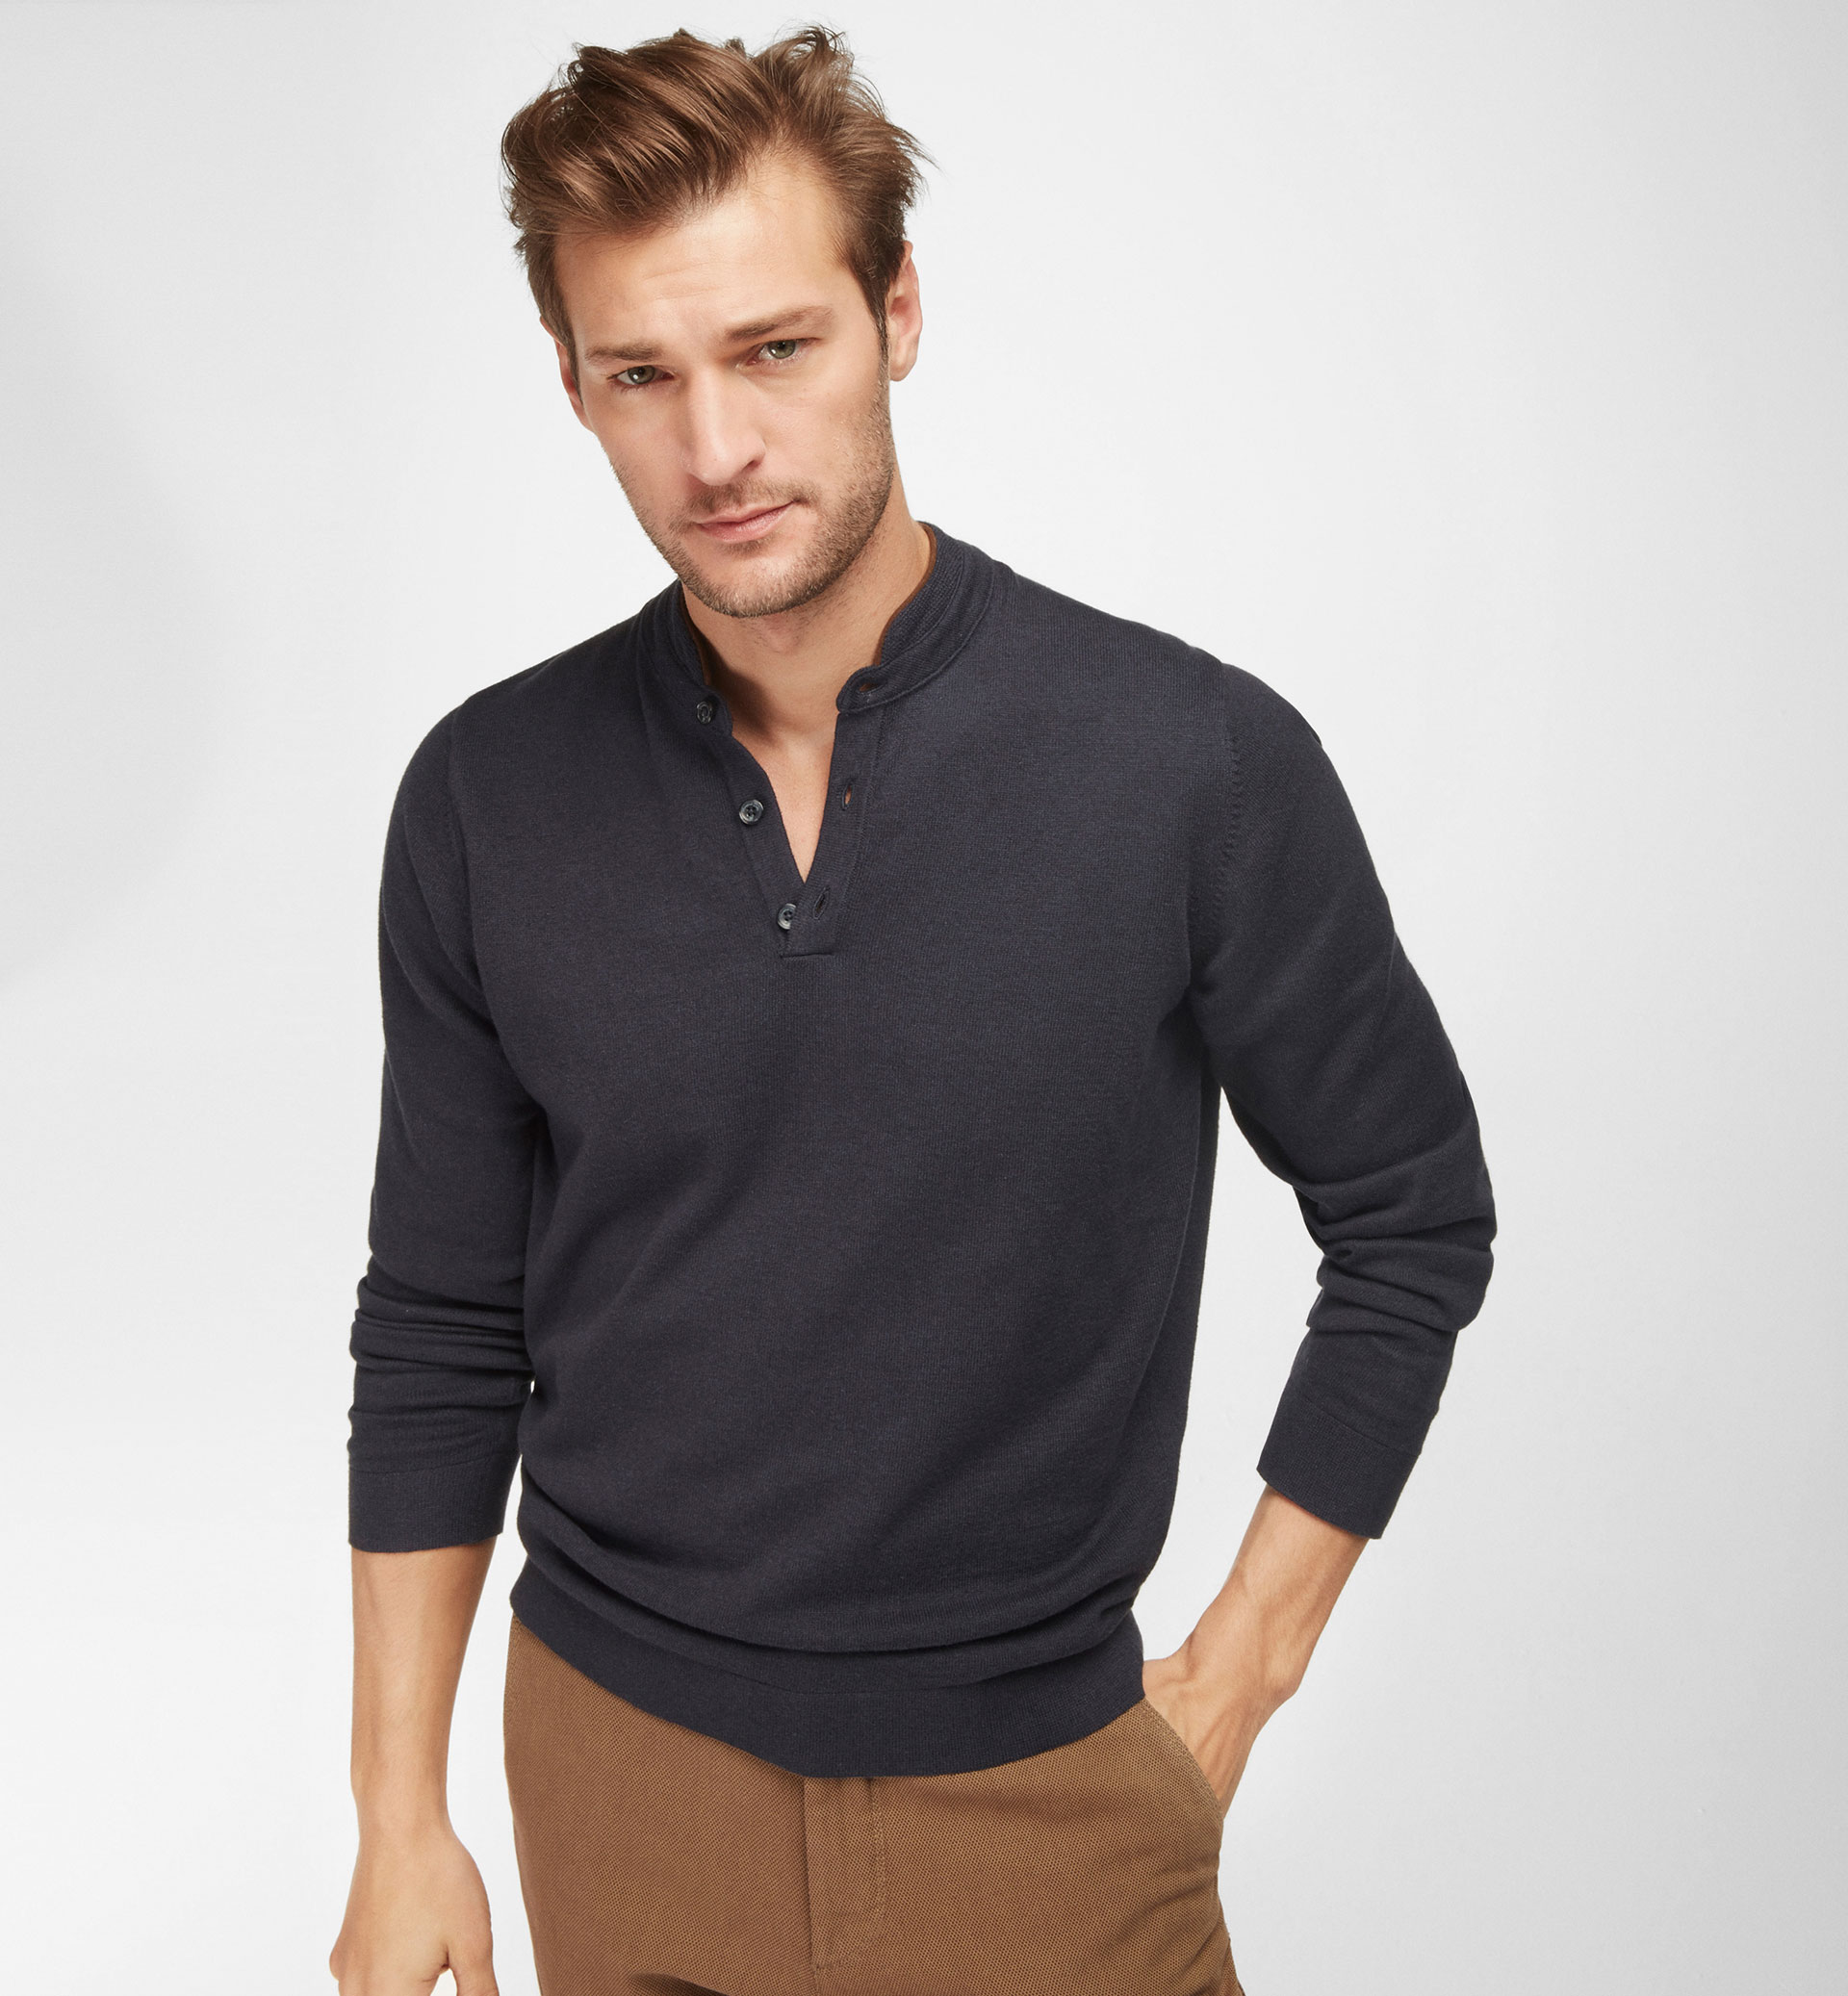 MANDARIN COLLAR SWEATER WITH LEATHER DETAIL